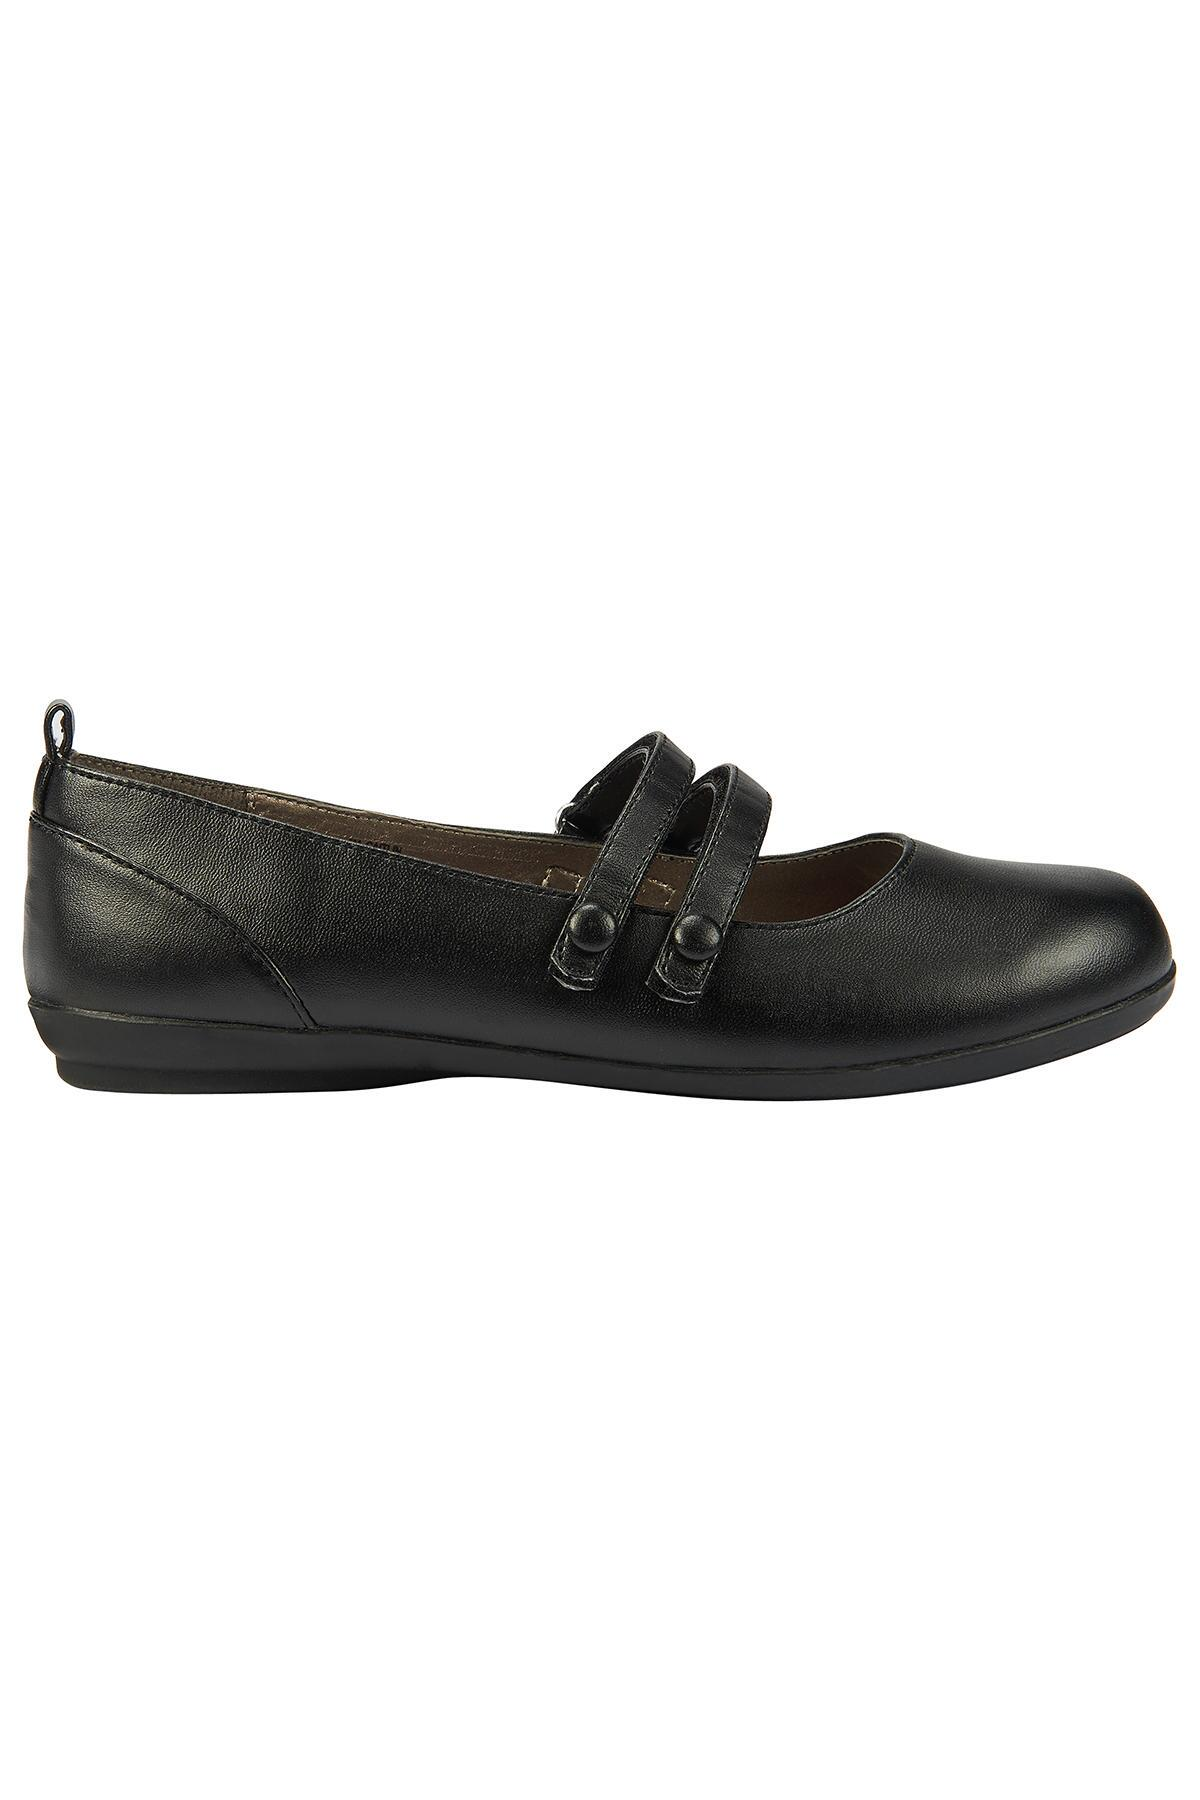 67e8fb24c9d7b Shoes - Girls School Uniforms | French Toast - French Toast